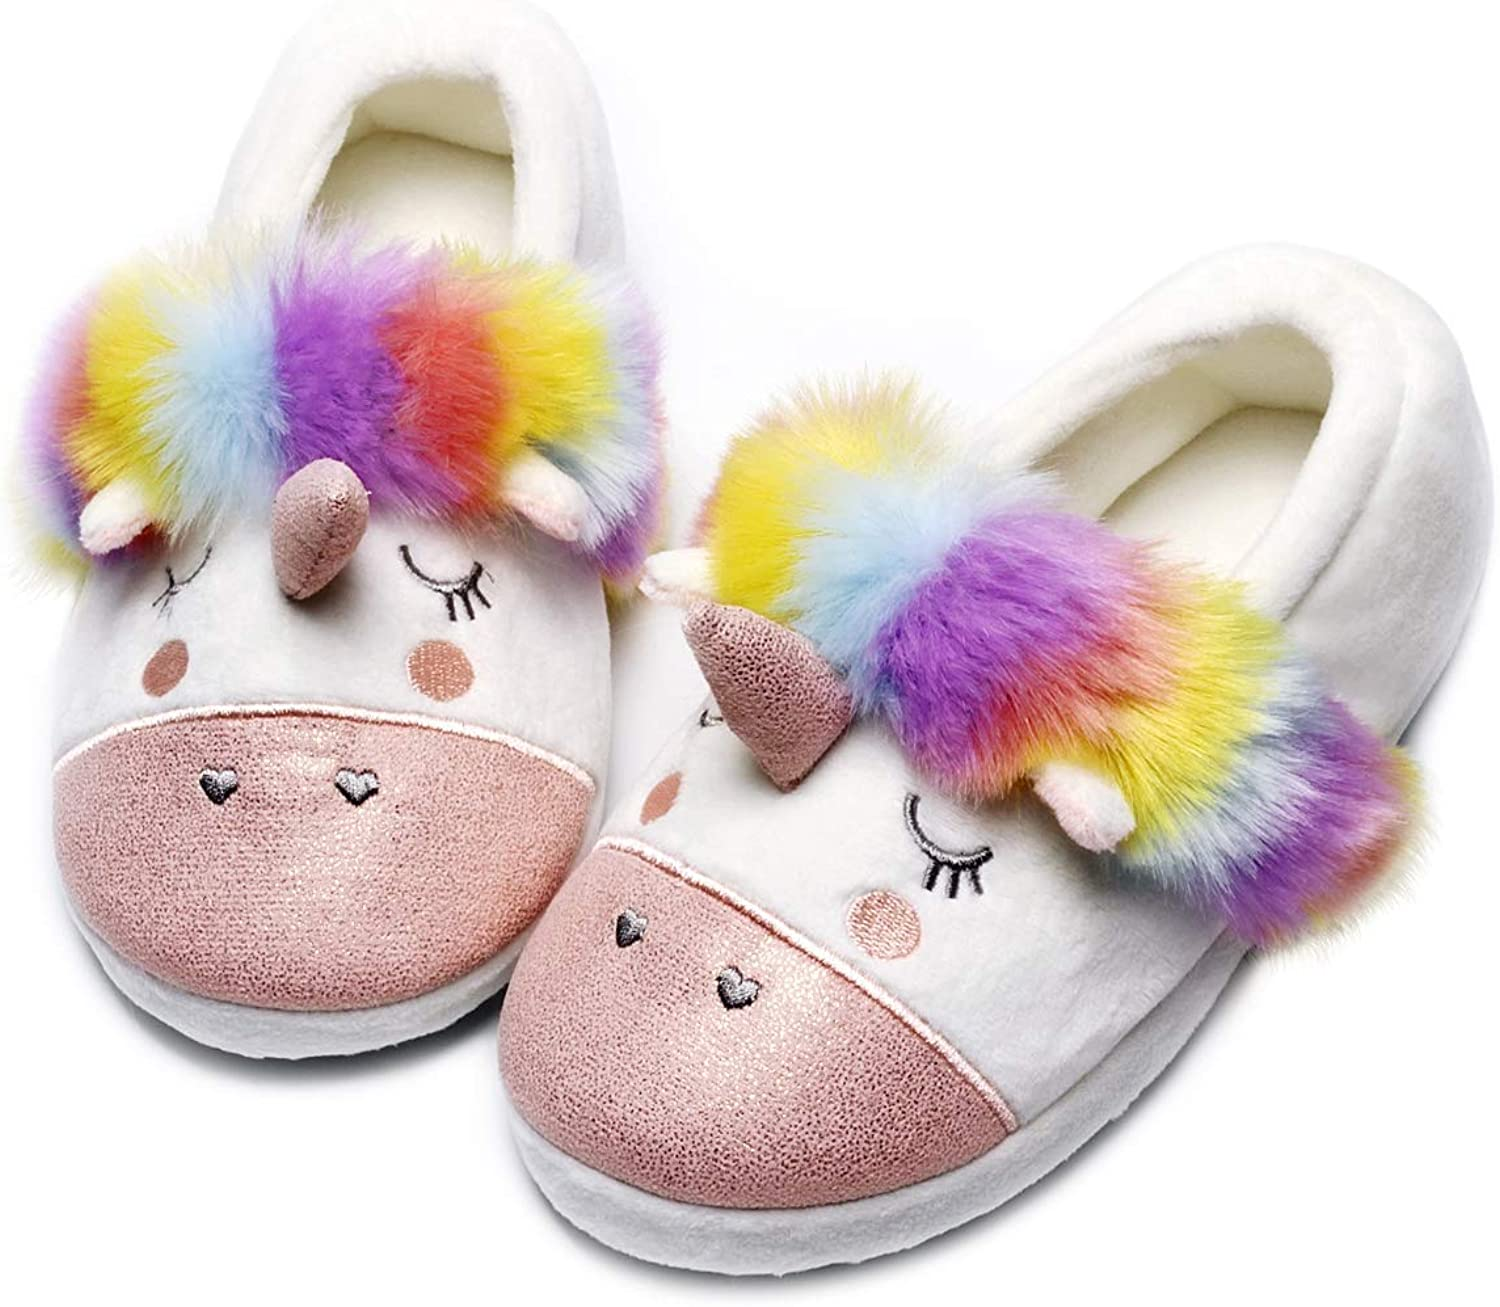 Caramella Bubble Unicorn Animal Slippers   Cute Family House Slippers   Anti Slip Home shoes for Kids and Adults